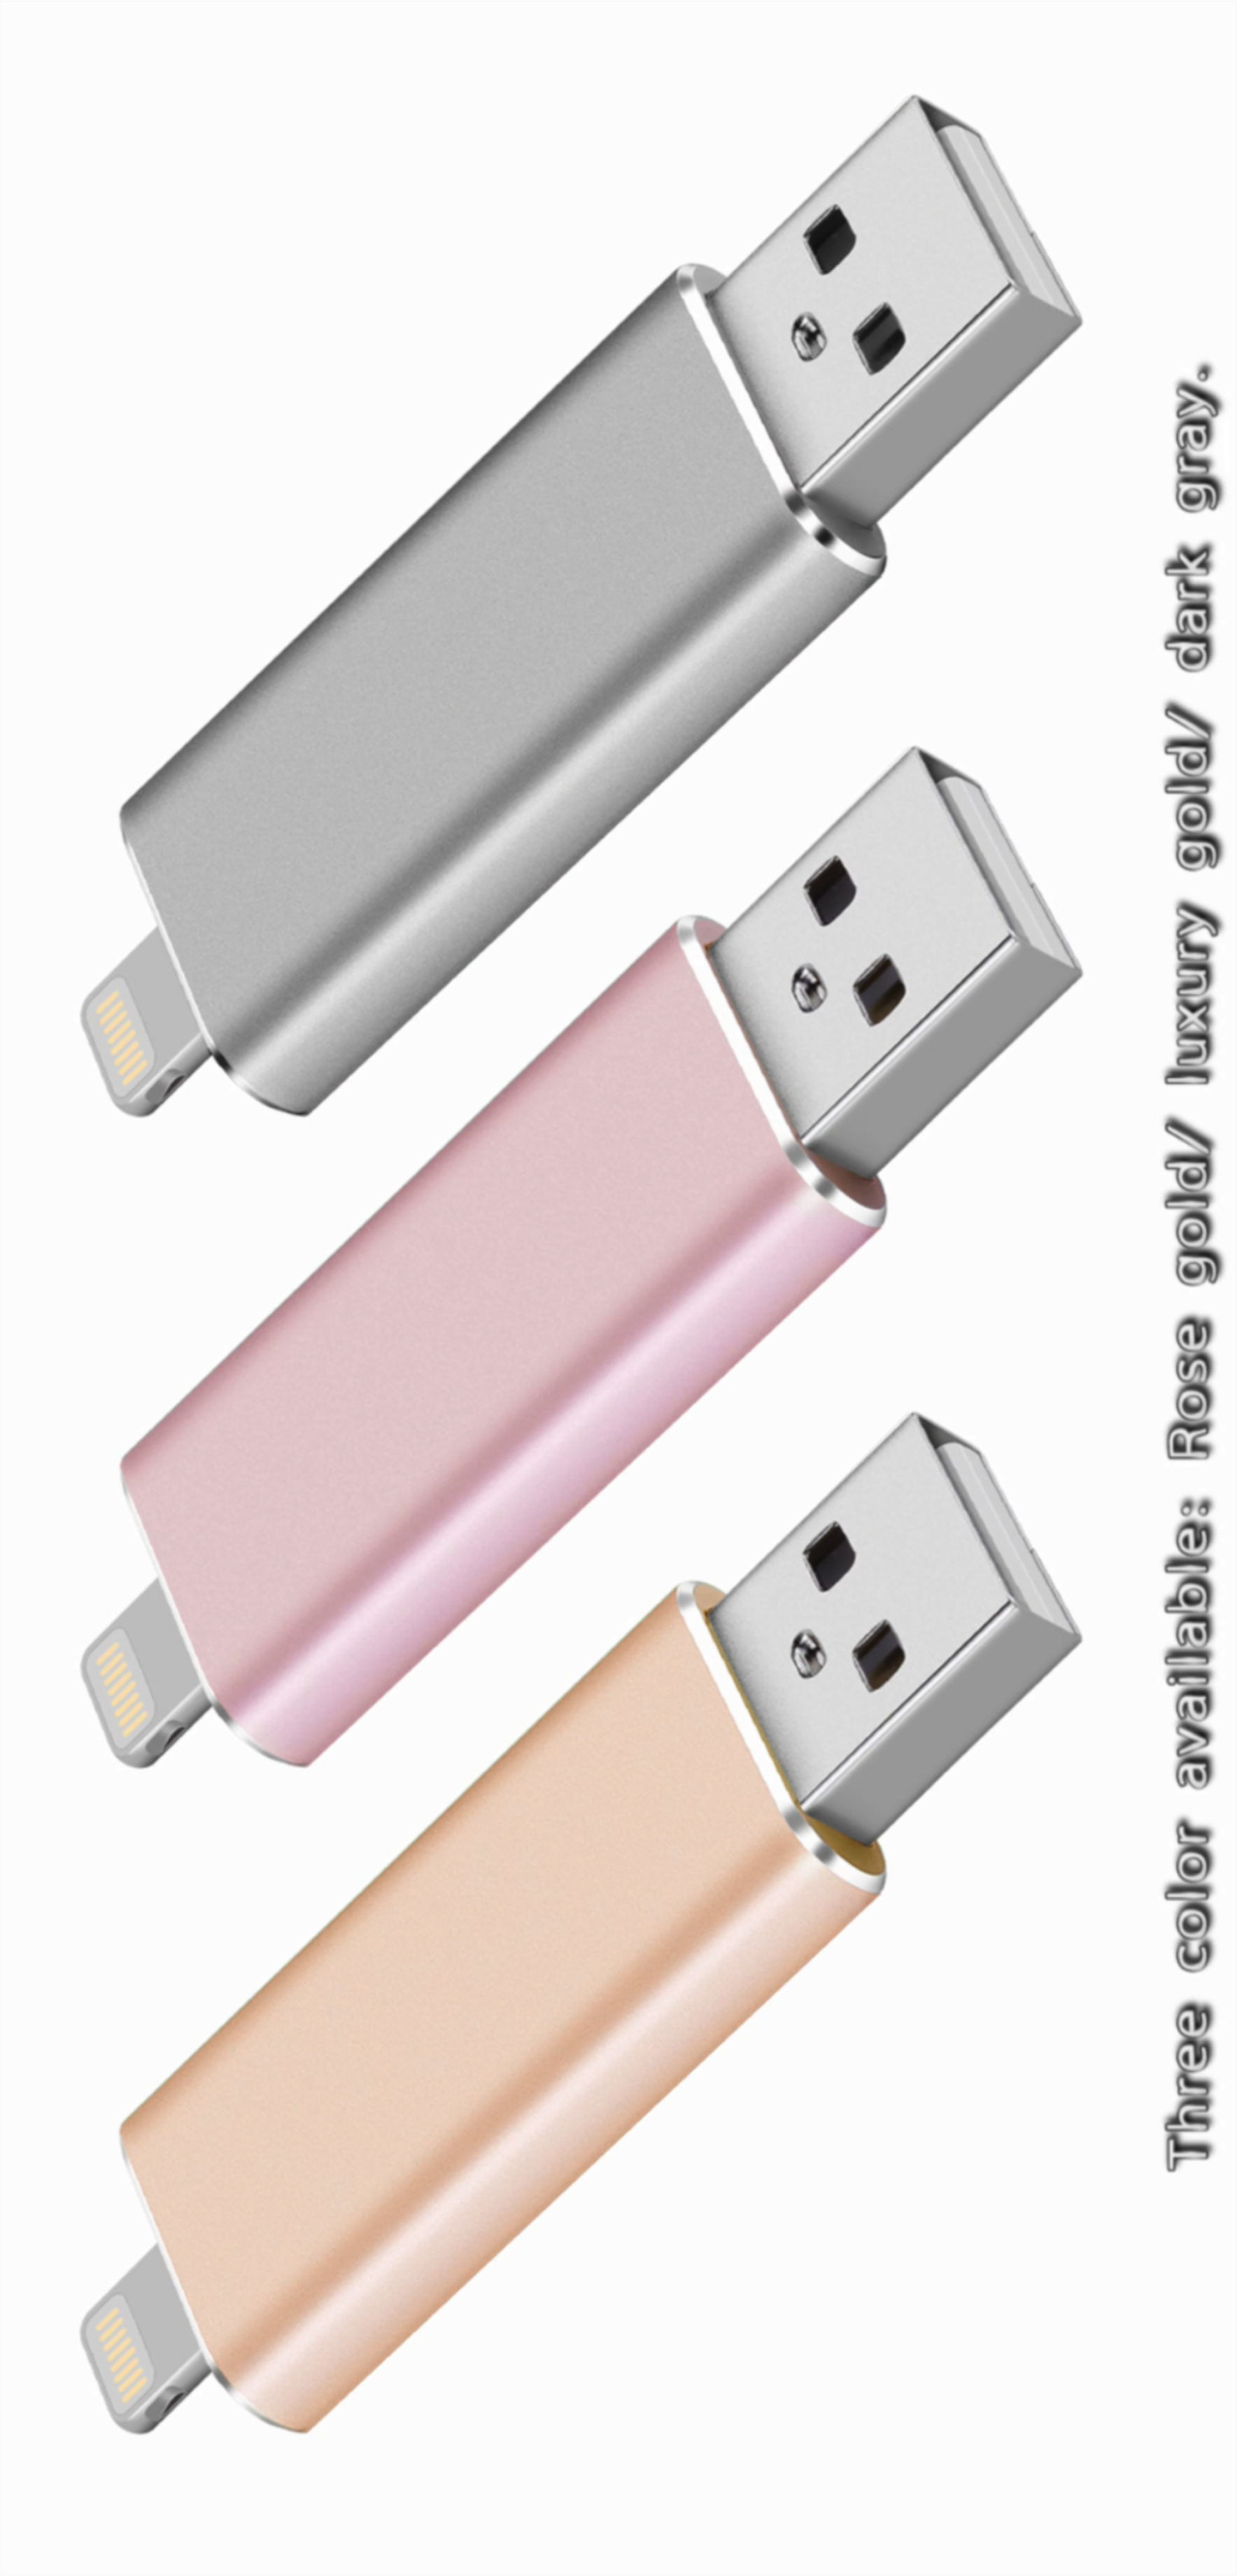 Wholesales Price OTG 16g/32g/64G USB Flash Drive Memory Stick for iPhone/iPad/iPod